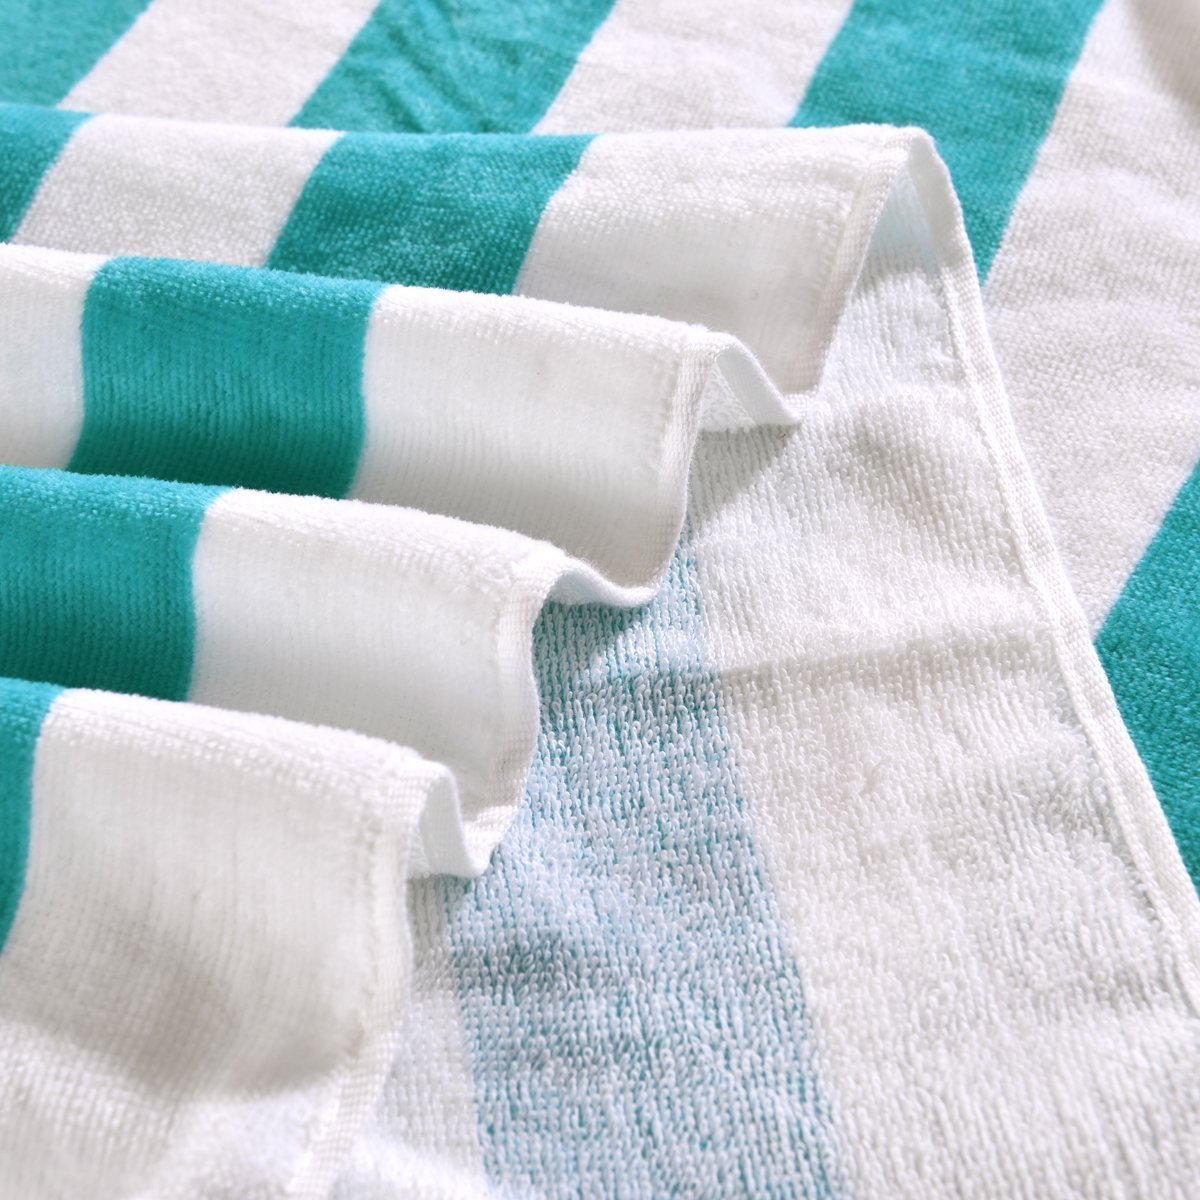 /—Soft and Plush Lightweight 75 x 150cm Quick Dry Absorbent Exclusivo Mezcla 100/% Cotton Cabana Striped Beach Towel Caribbean Blue and White